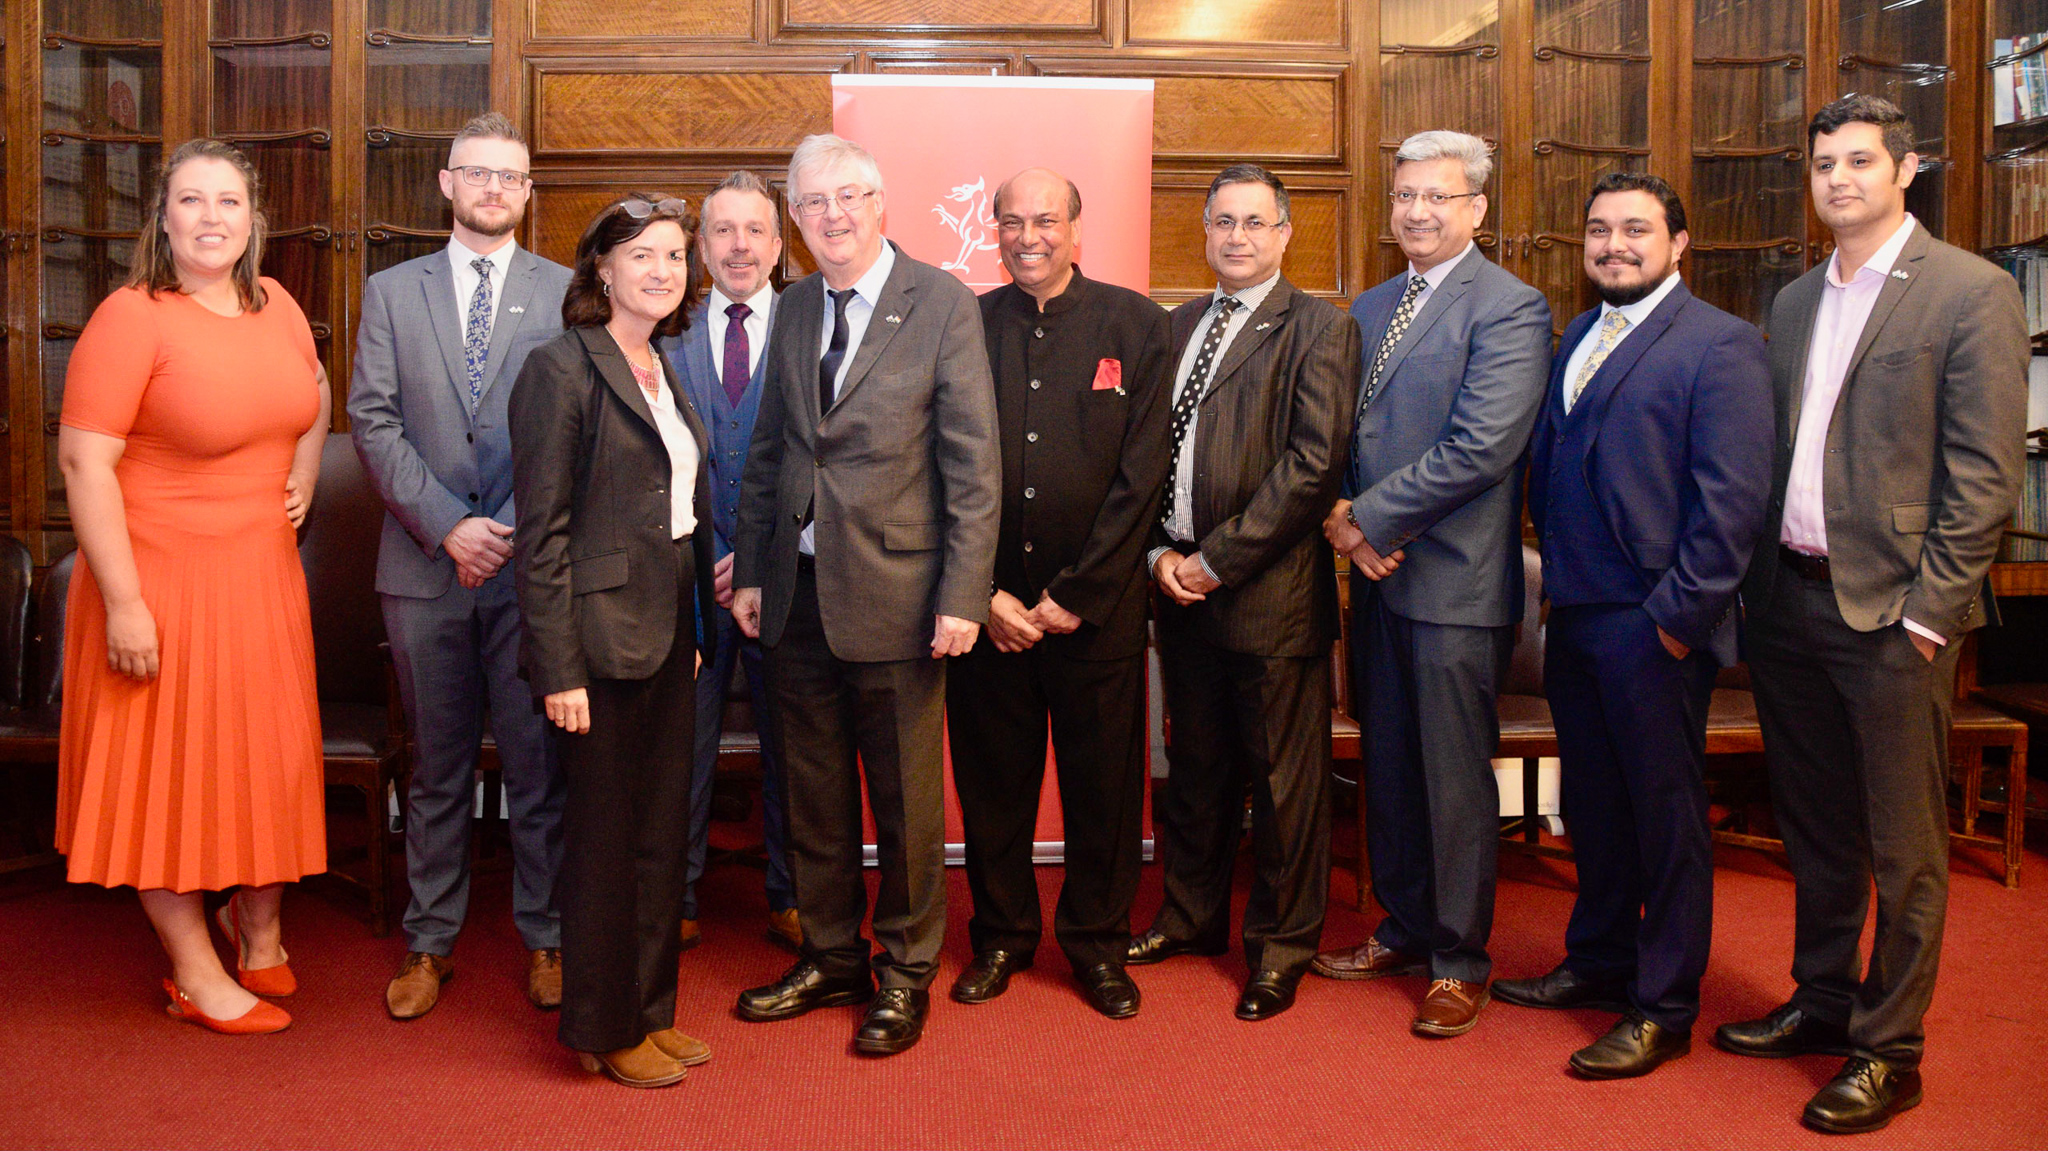 Dignitaries at the Divali event in Cardiff (Photo:  HCIWales.in)